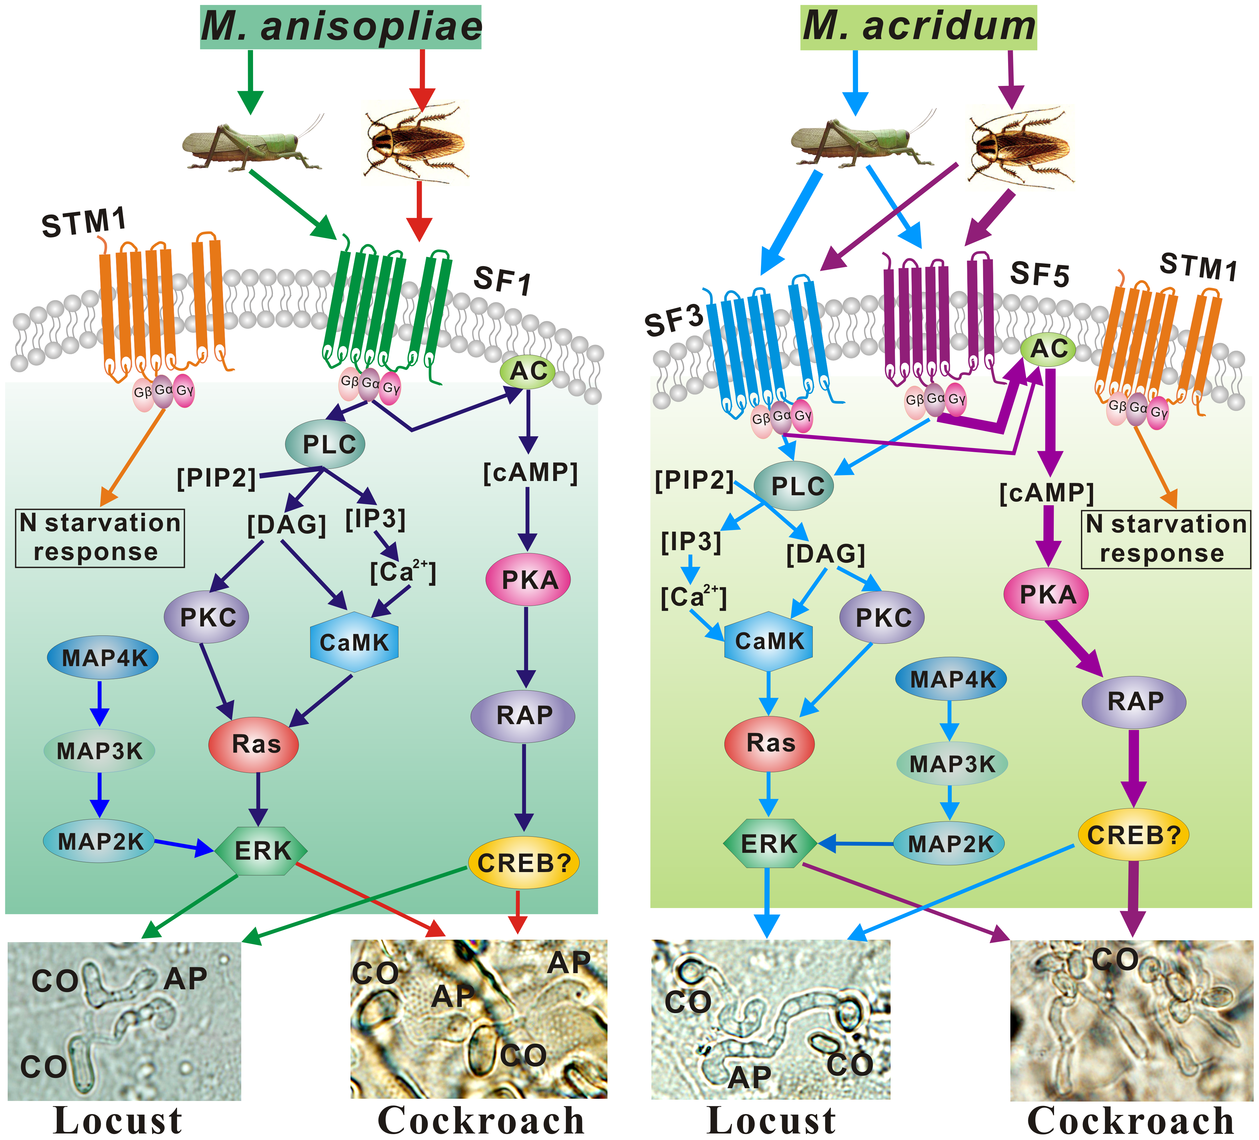 Differentially regulated signaling pathways employed by <i>M. anisopliae</i> and <i>M. acridum</i> infecting cockroach and locust cuticles.